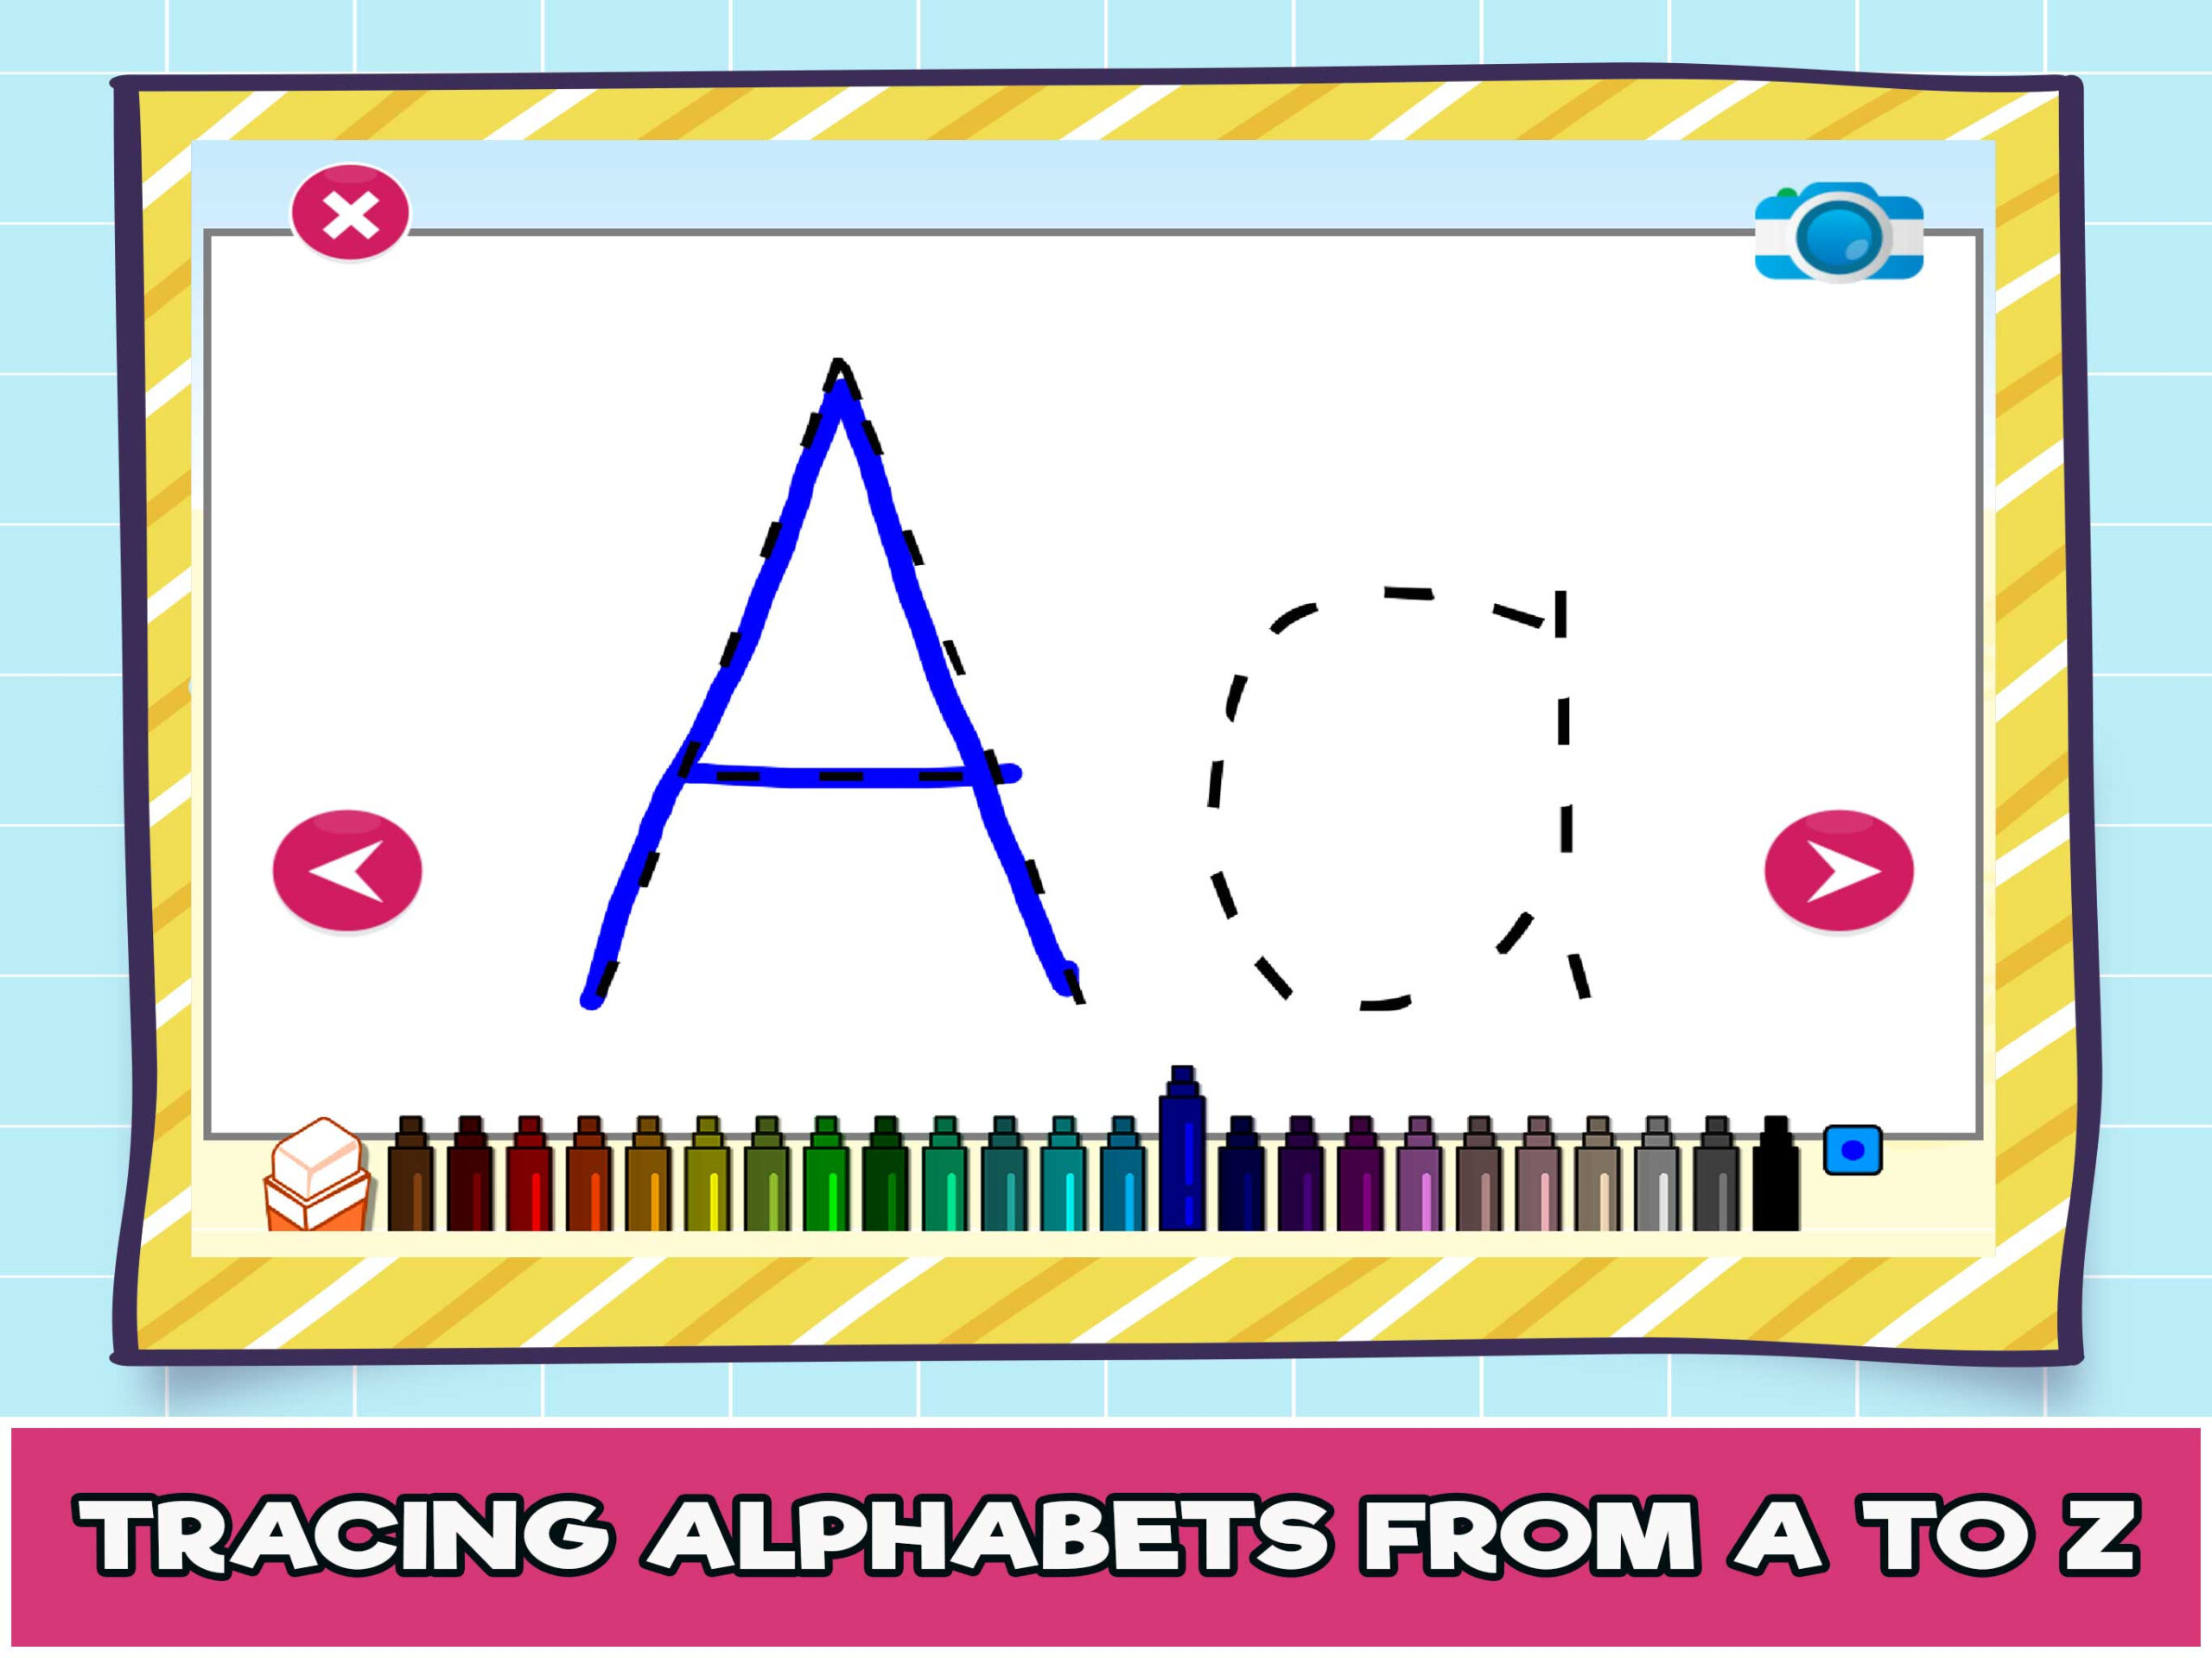 Free Online Alphabet Tracing Game For Kids - The Learning Apps regarding Alphabet Tracing App